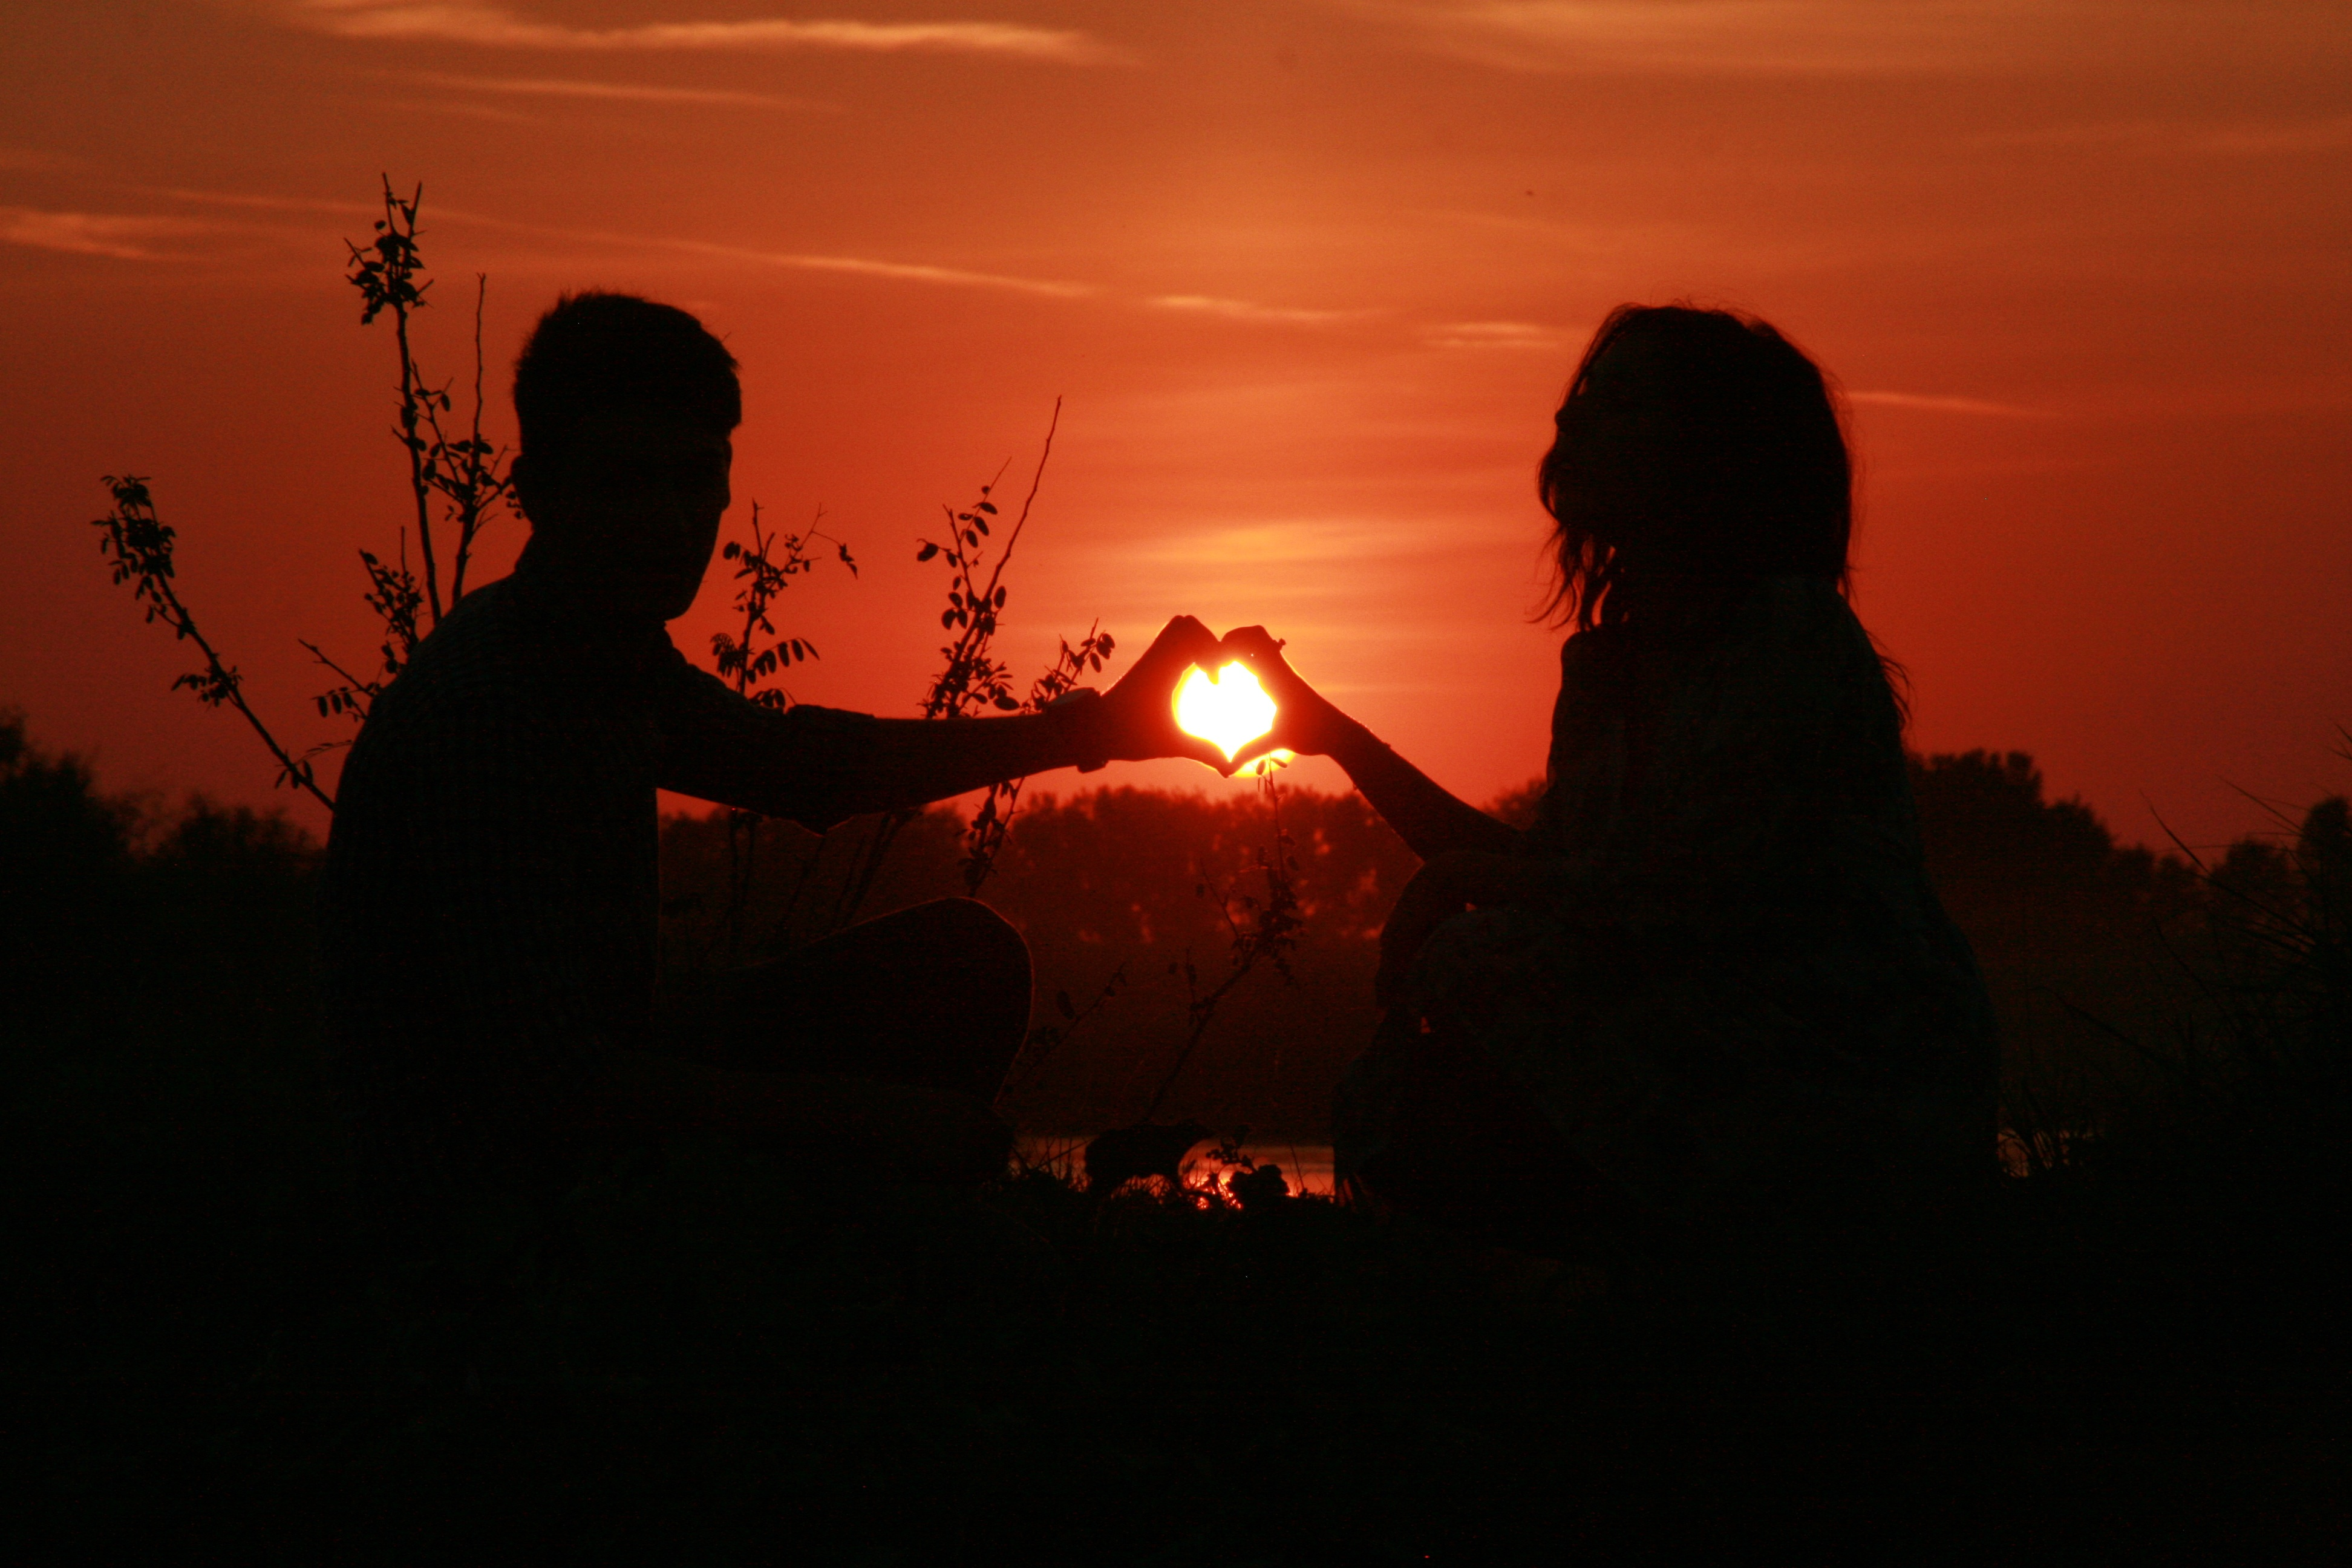 romantic silhouette wallpapers - photo #21